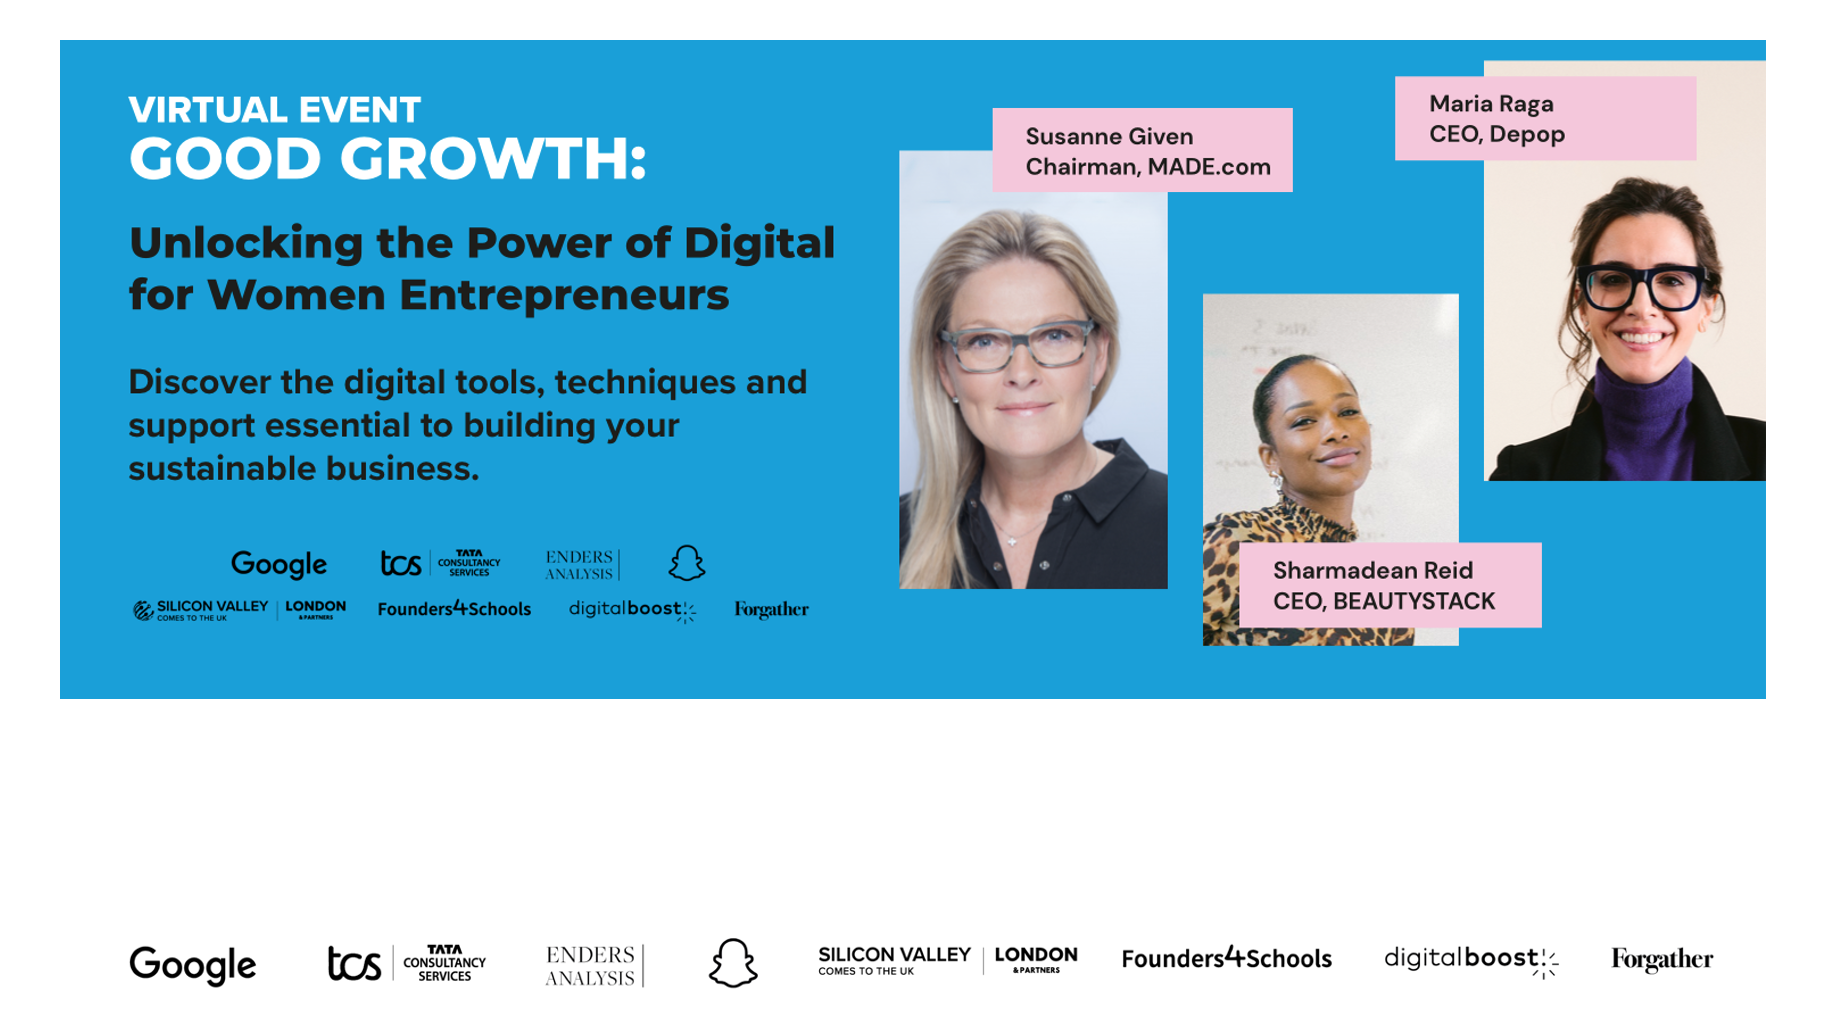 Good Growth: Unlocking the power of digital for women entrepreneurs –why events, digital or otherwise, are so important